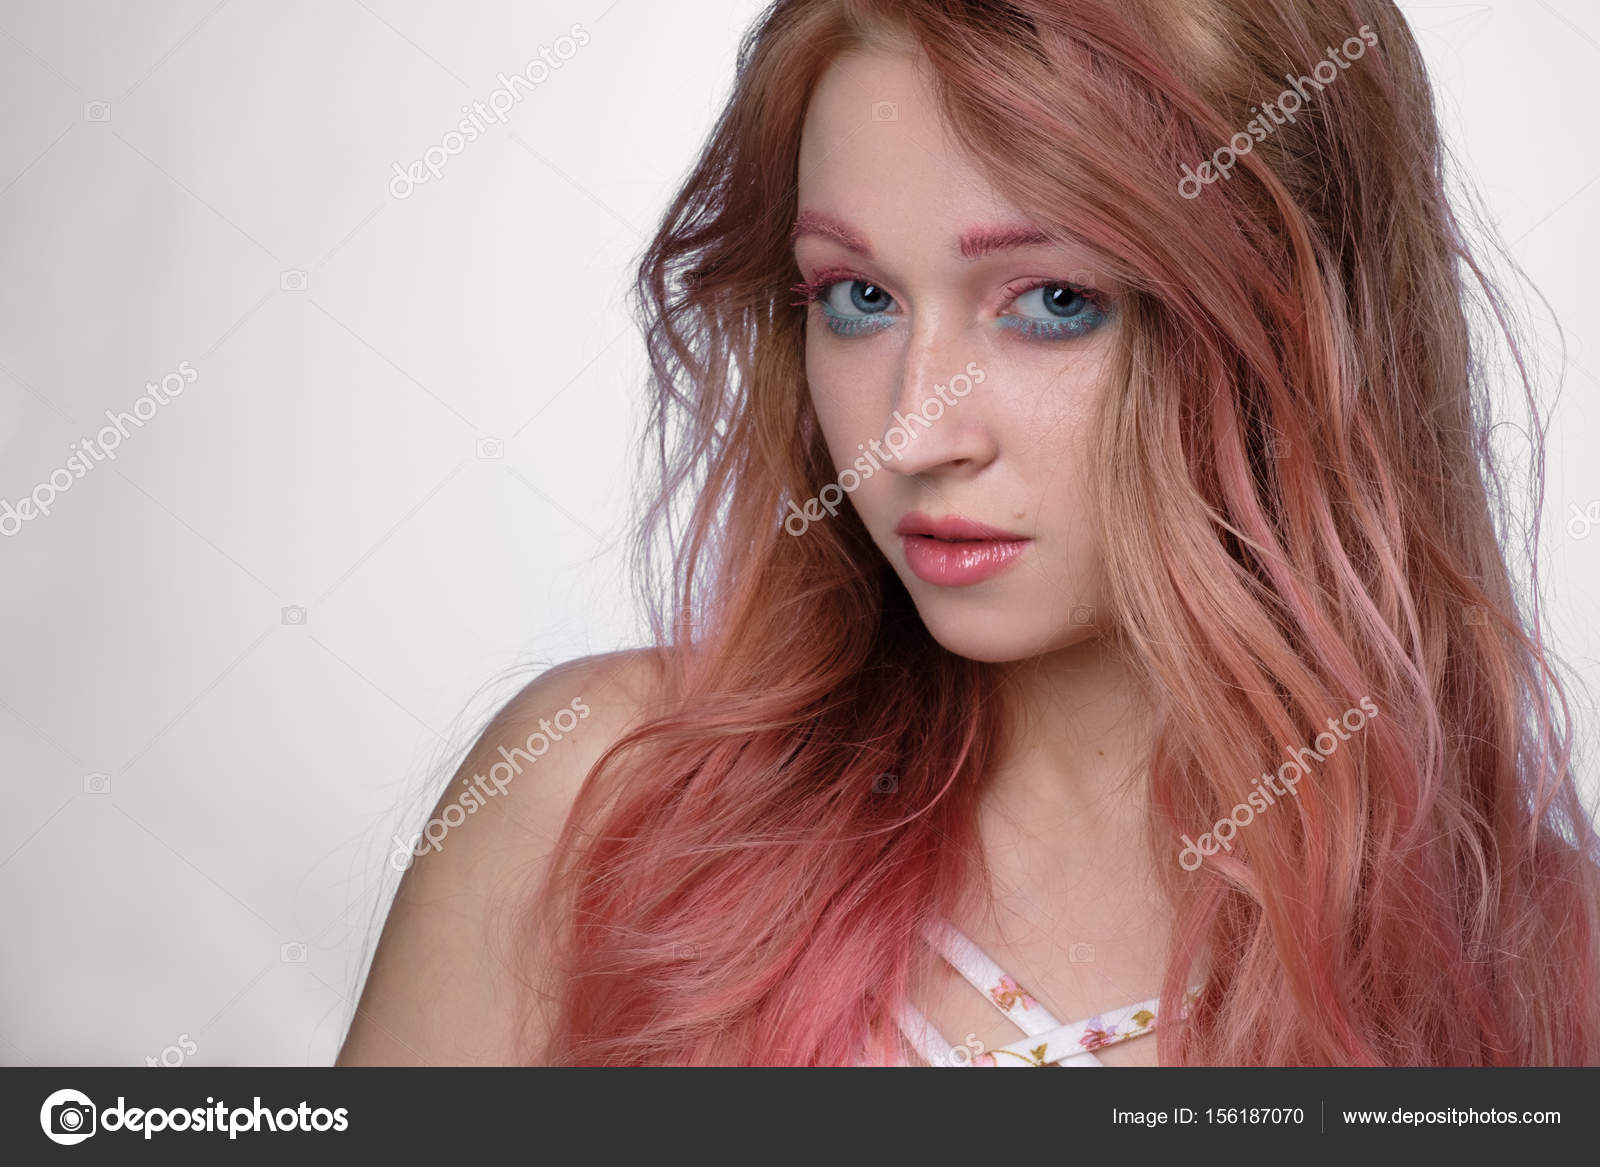 Close Up Portrait Of Girl With Pink Hair And Pink And Blue Make Up